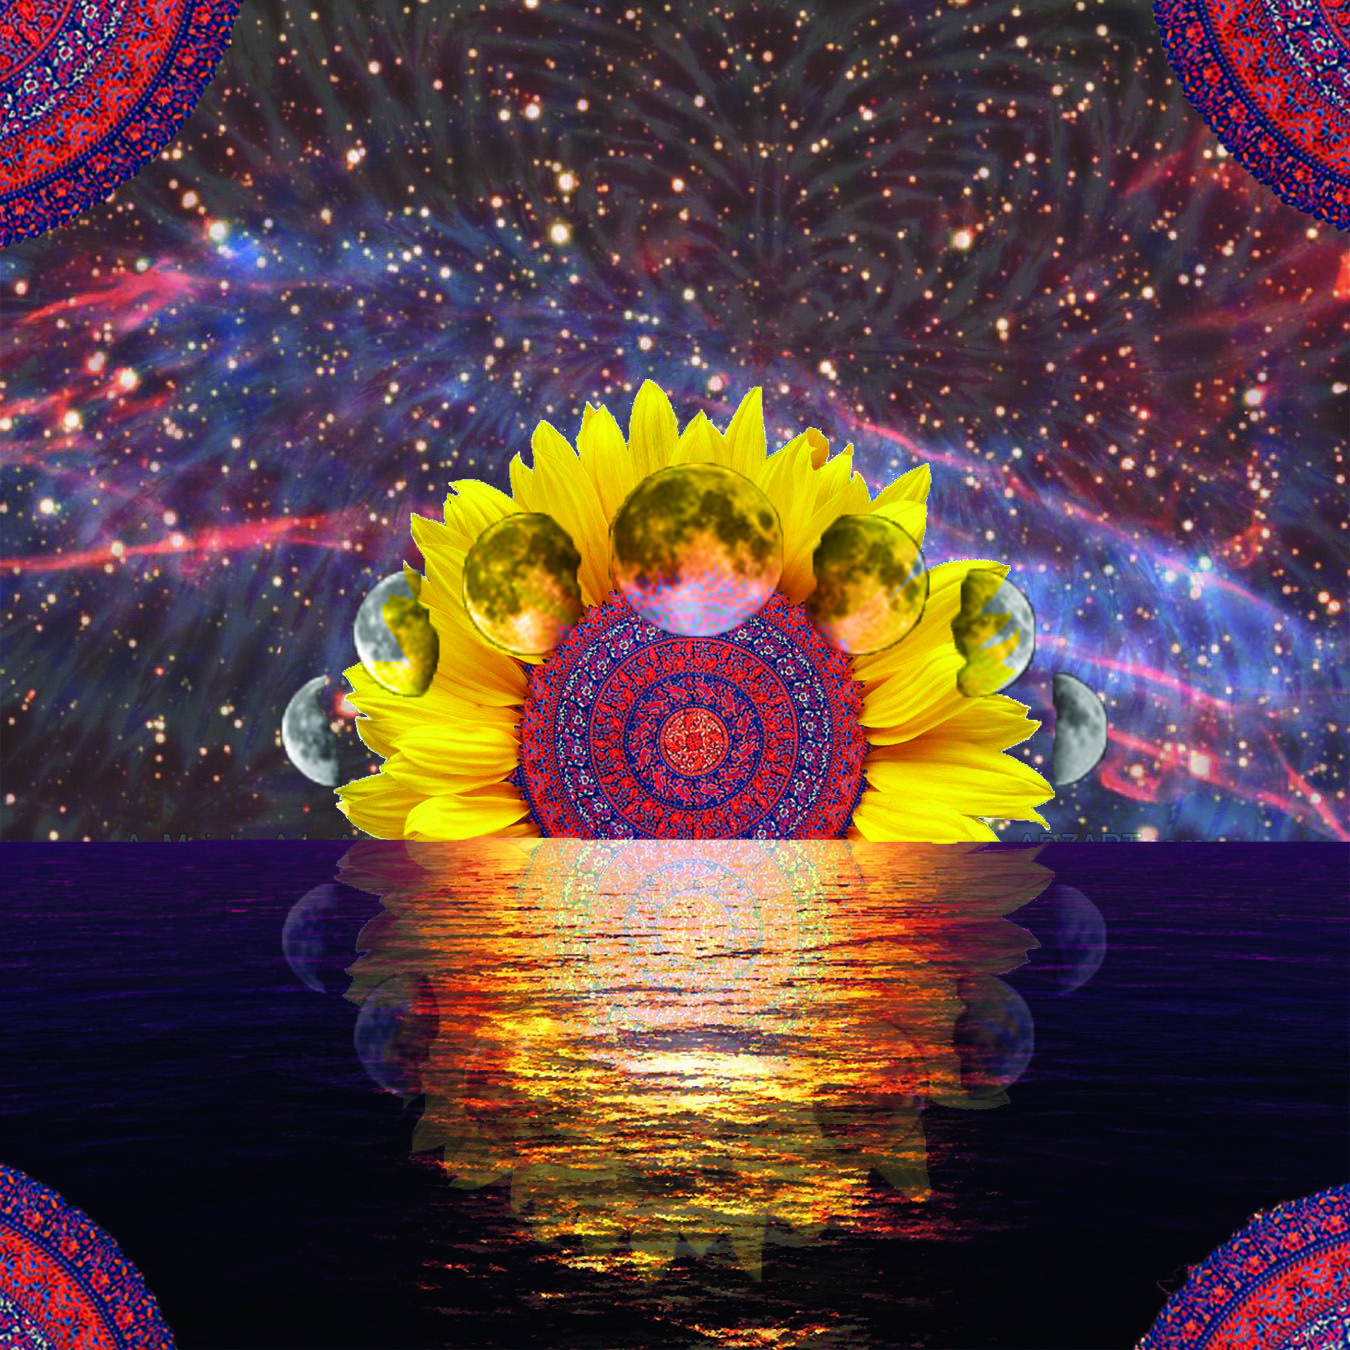 trippy space sunflower sunset made by me :) | 4rth Board ...